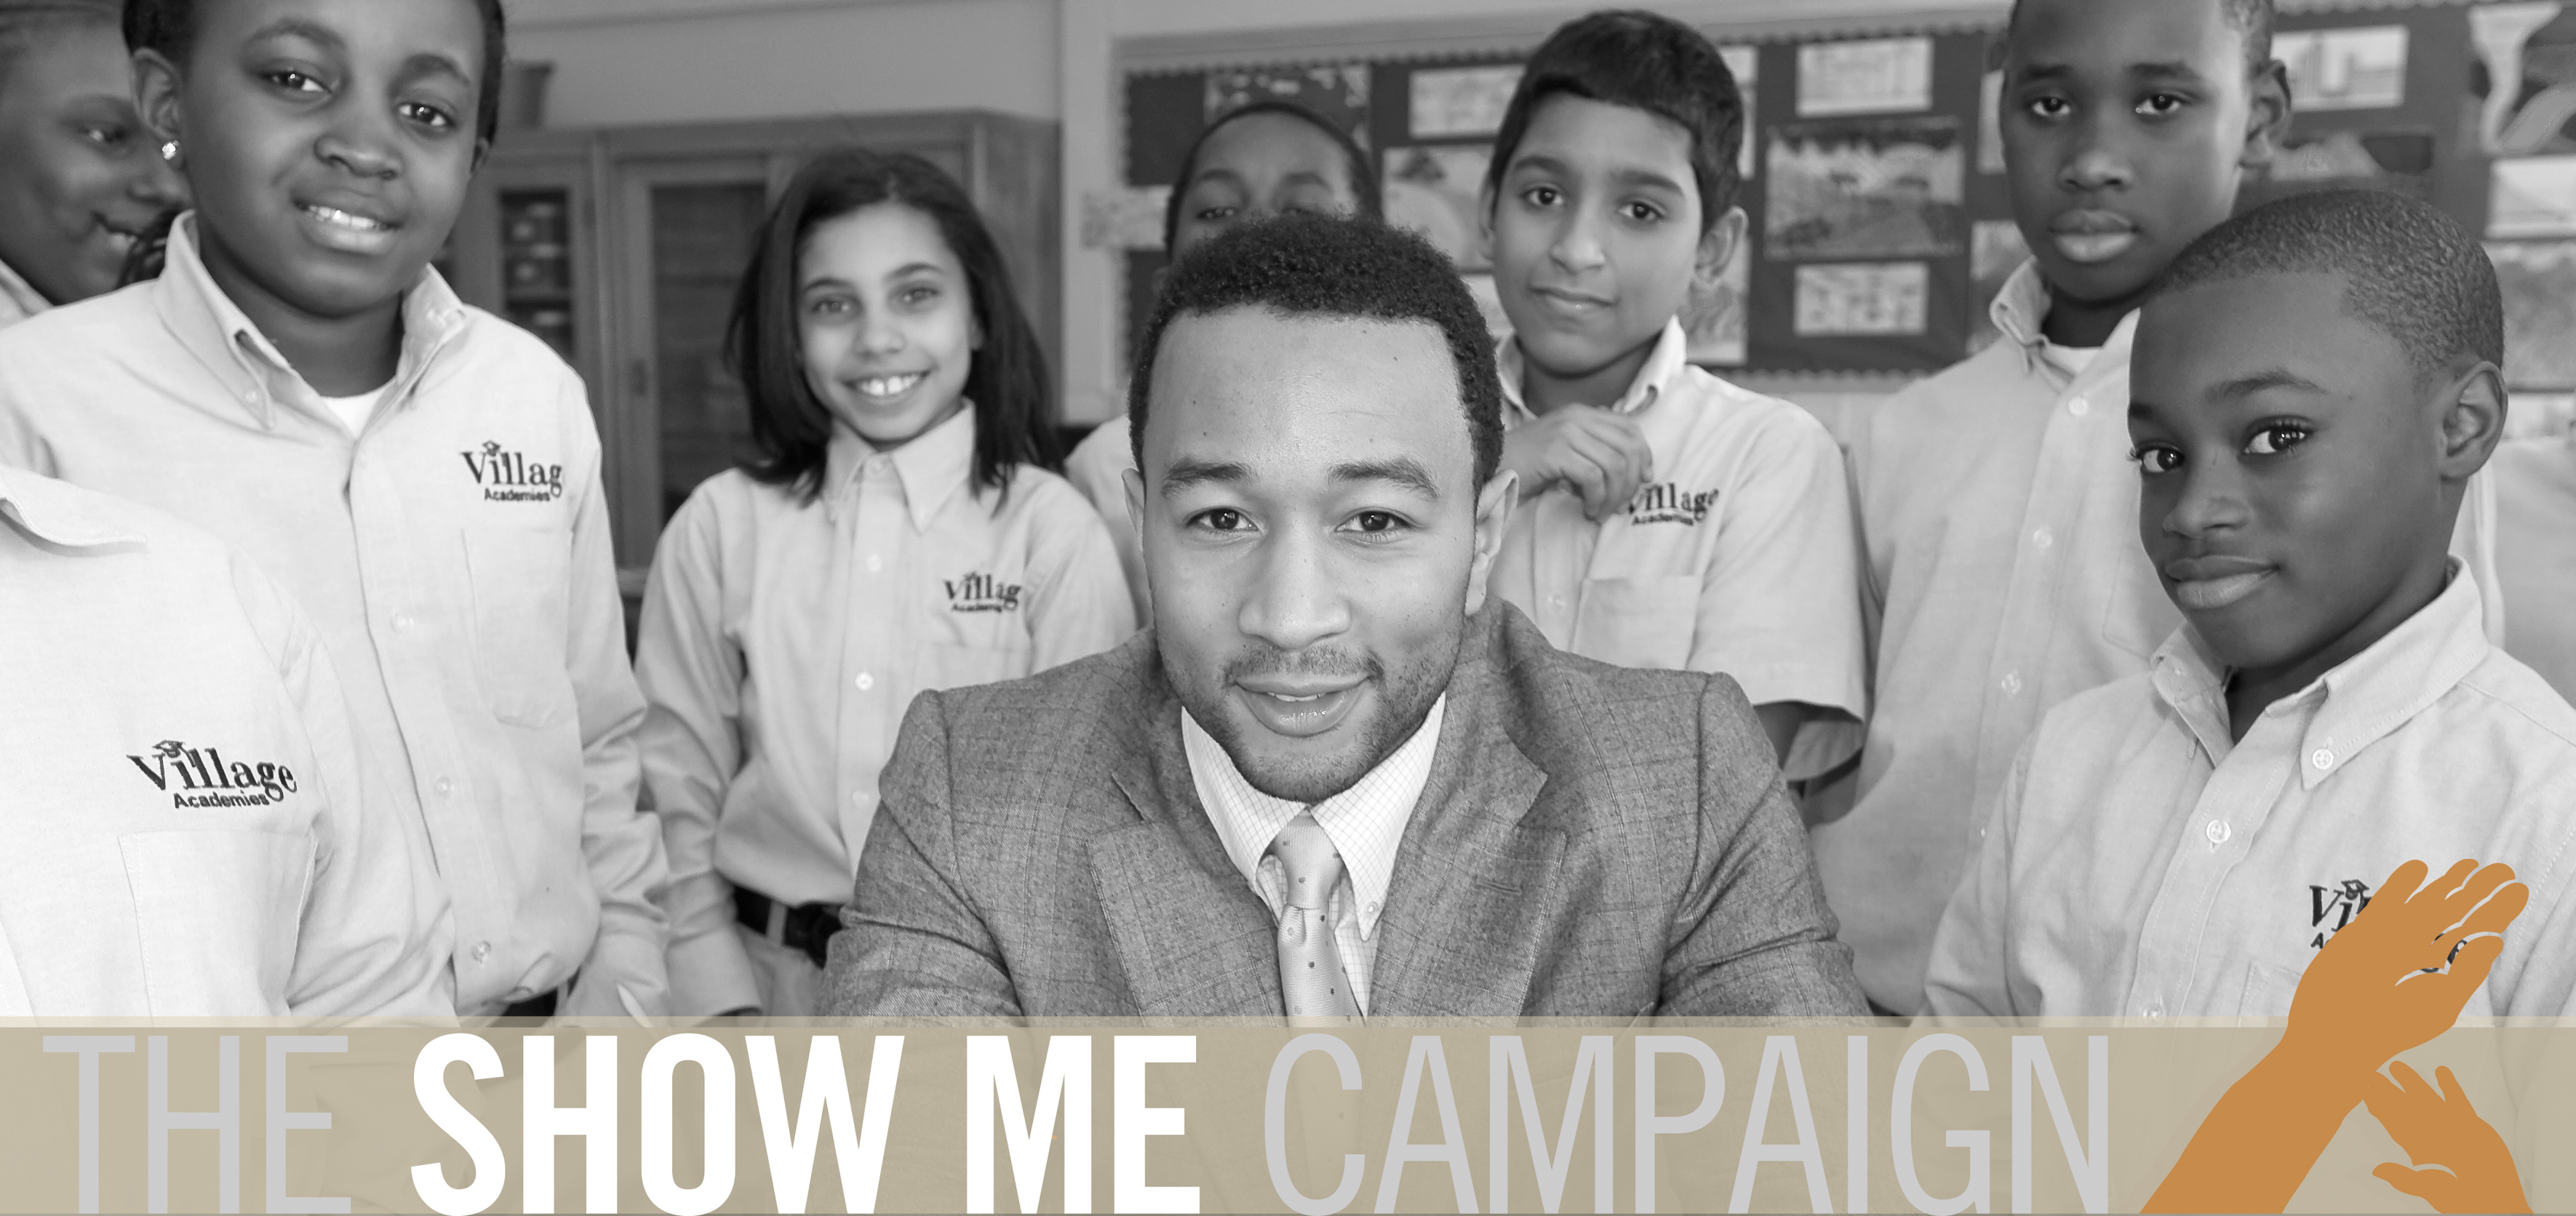 The Show Me Campaign Fellows